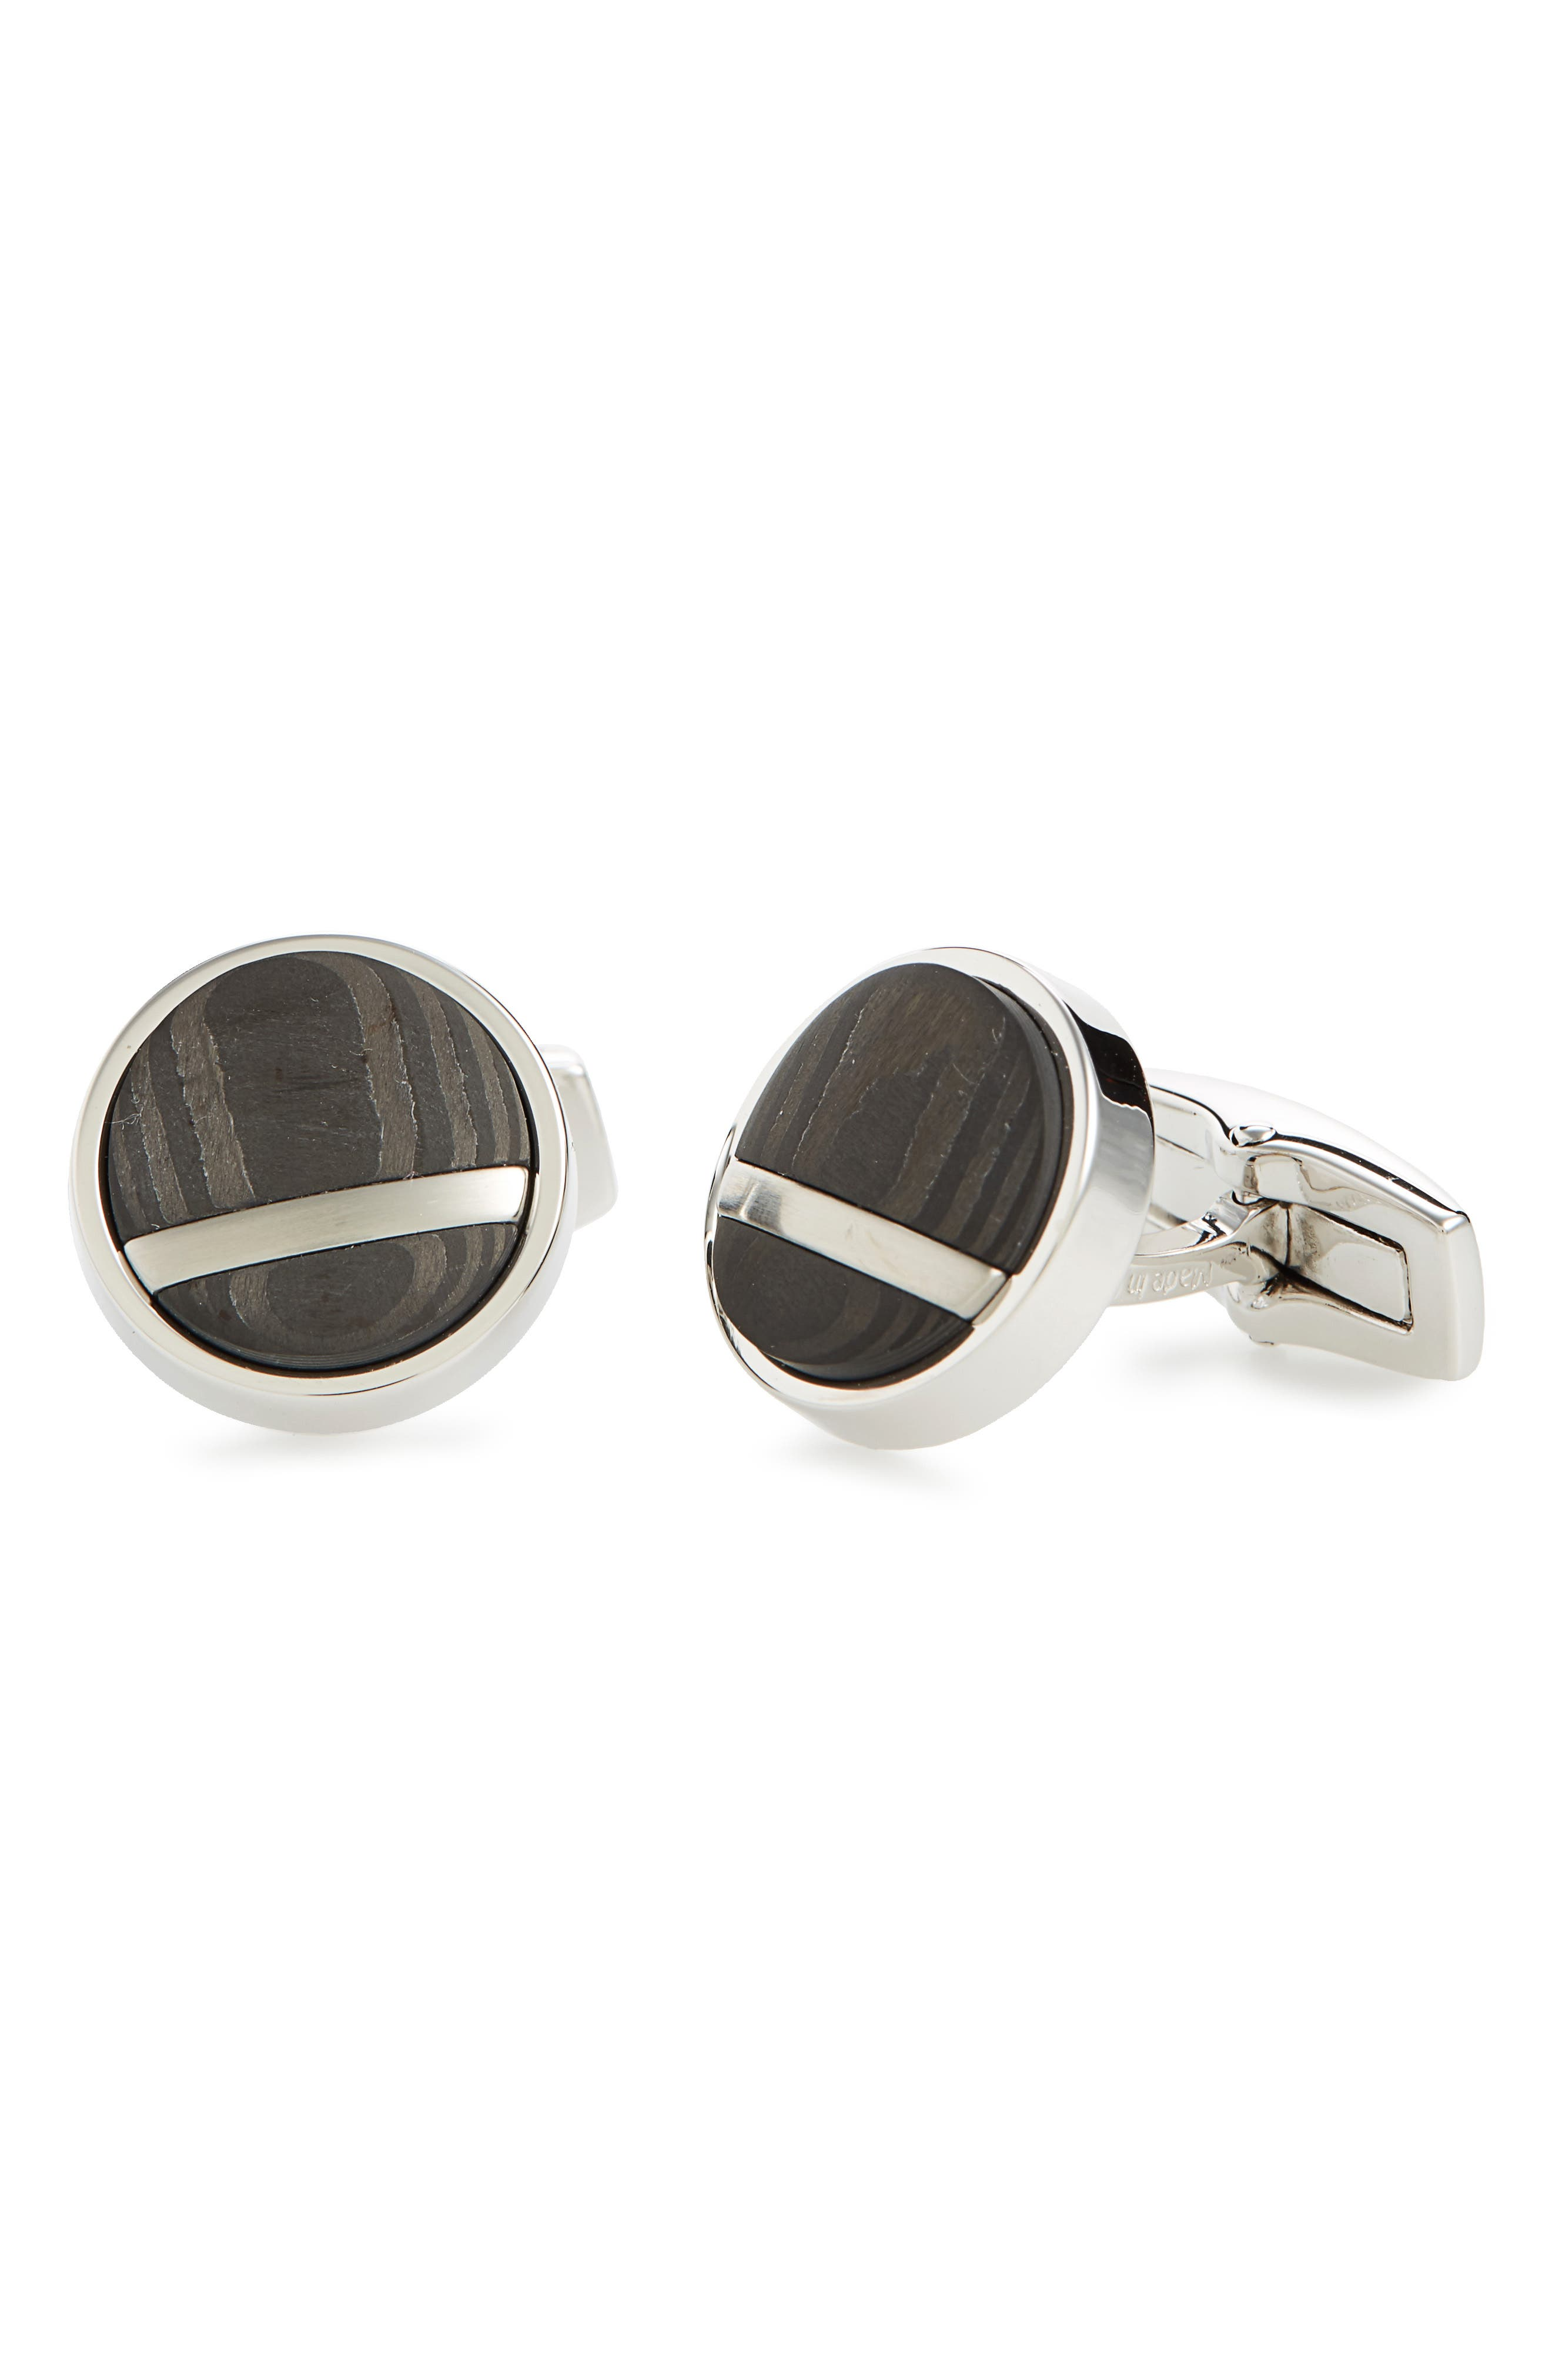 T-Ralph Round Cuff Links,                             Main thumbnail 1, color,                             Grey